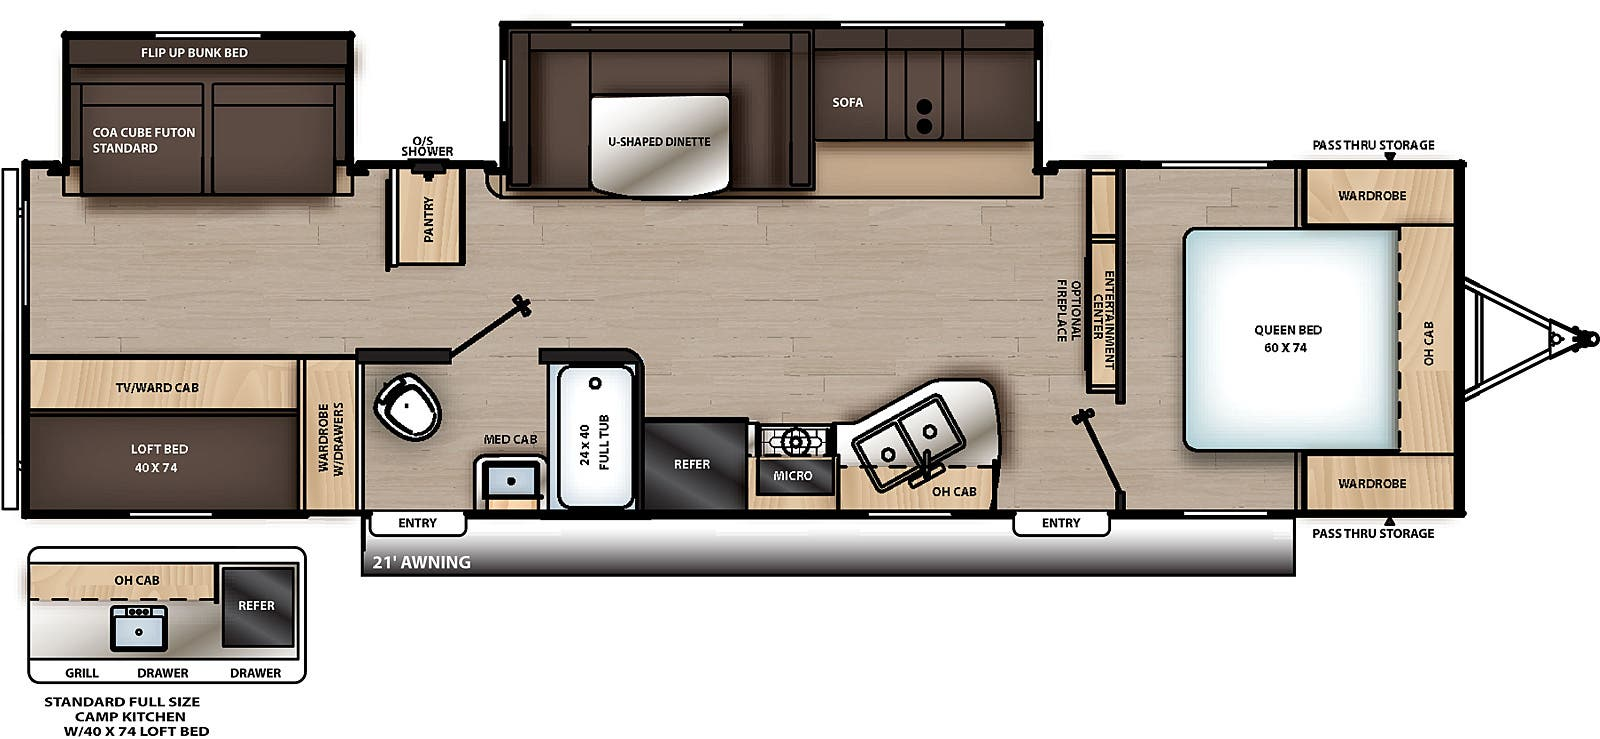 2021_forest_river_coachmen_catalina_floorplan